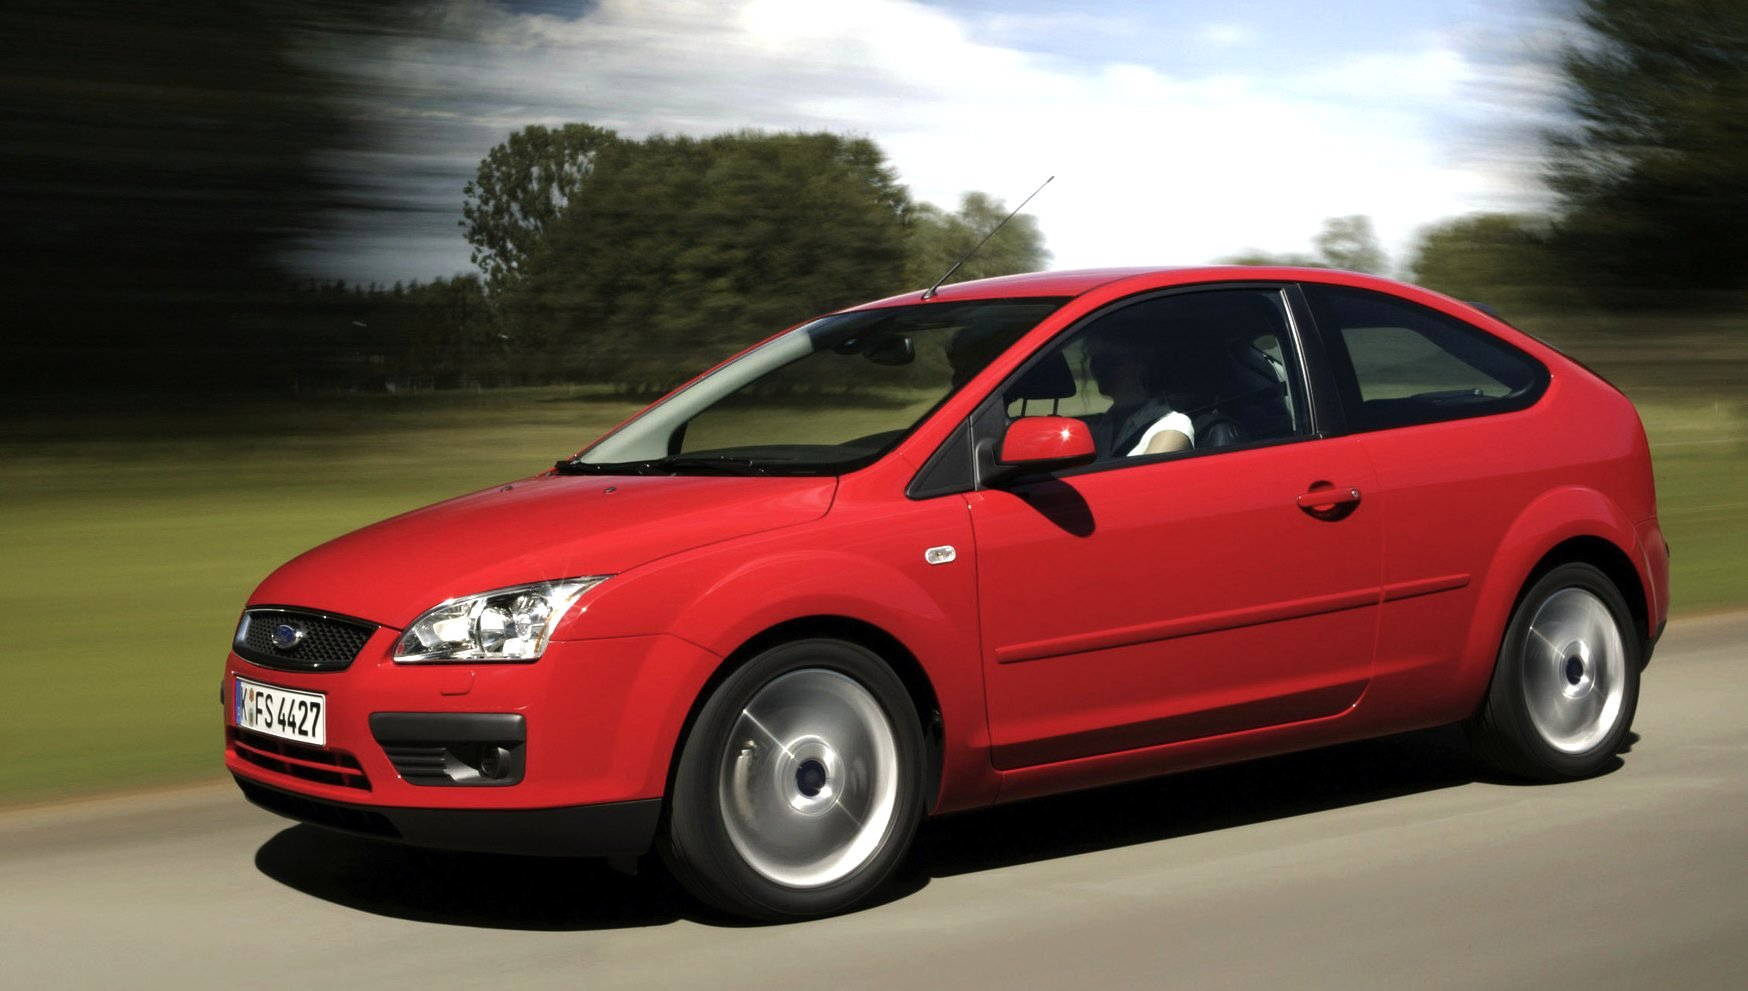 See the top 50 best selling models by clicking on the title - Russia 2006 Lada 2104 7 Back On Top Ford Focus 4